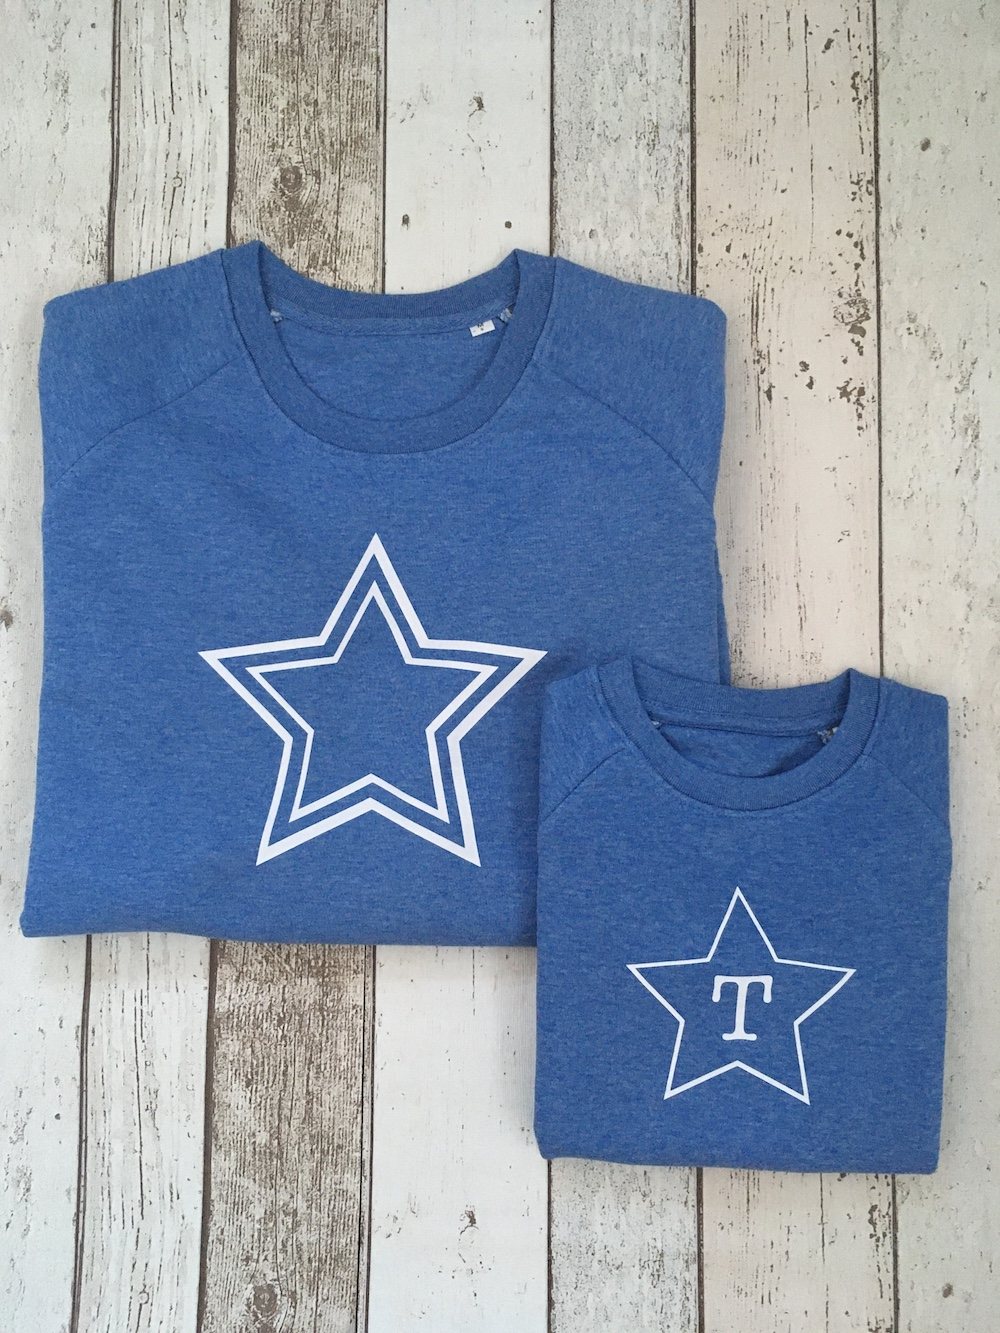 Star Super Soft Personalised Sweatshirt Set – Heather Blue